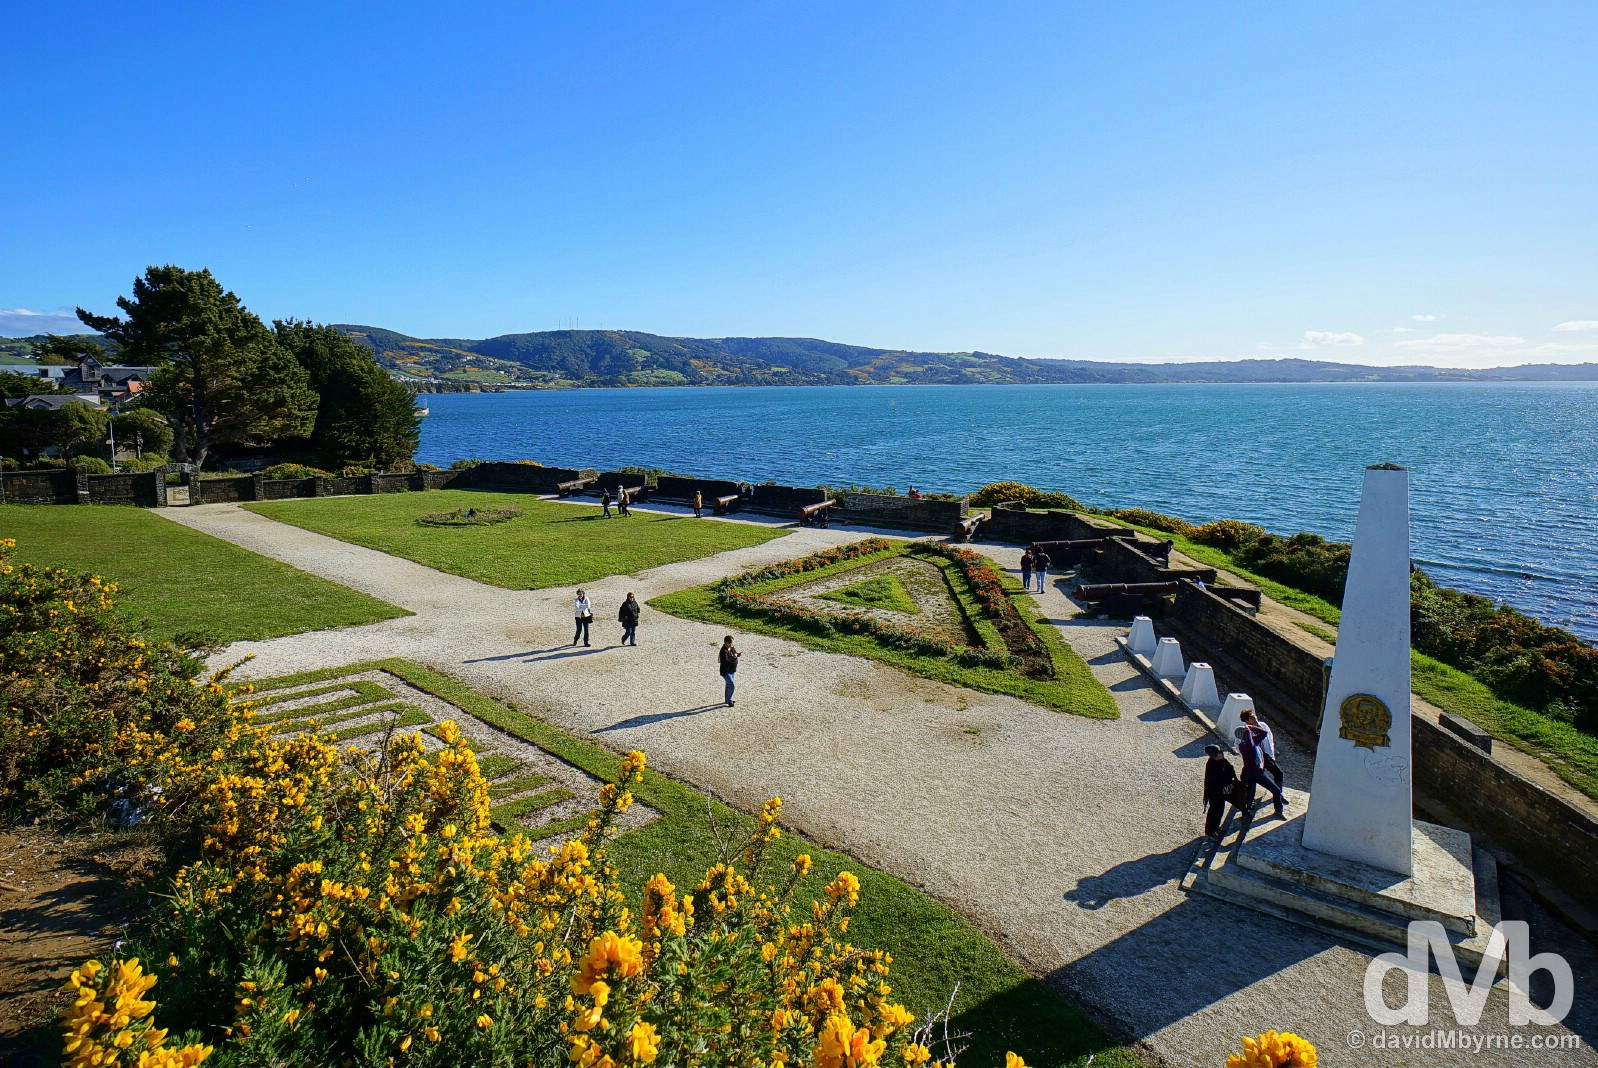 Fuerte de San Antonio in Ancud, Chiloe, Chile. October 21, 2015.